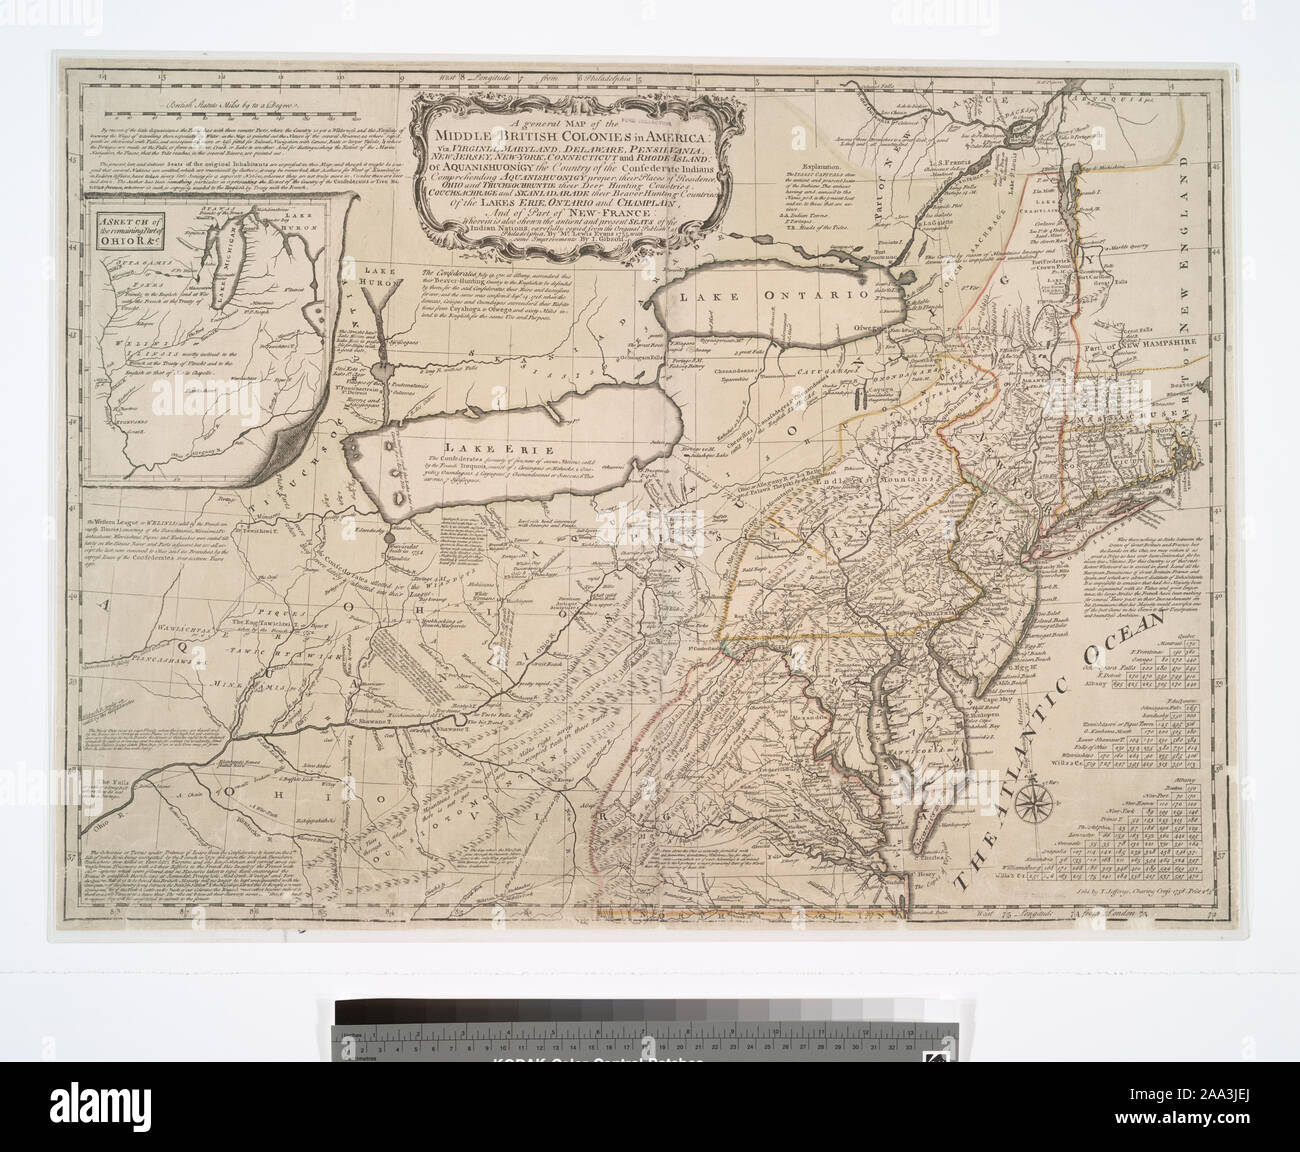 National Endowment for the ities Grant for Access to ... on map of colchester ct, map of vernon rockville ct, map of southington ct, map of union ct, map of carolina pr, map of thompsonville ct, map of long island sound ct, map of connecticut, map of state of ct, map of windsor ct, map of north granby ct, map of mohegan sun ct, map of north haven ct, map of hamburg ct, map of wauregan ct, map of boston ct, map of stonington borough ct, map of webster ct, map of gaylordsville ct, map of woodbridge ct,